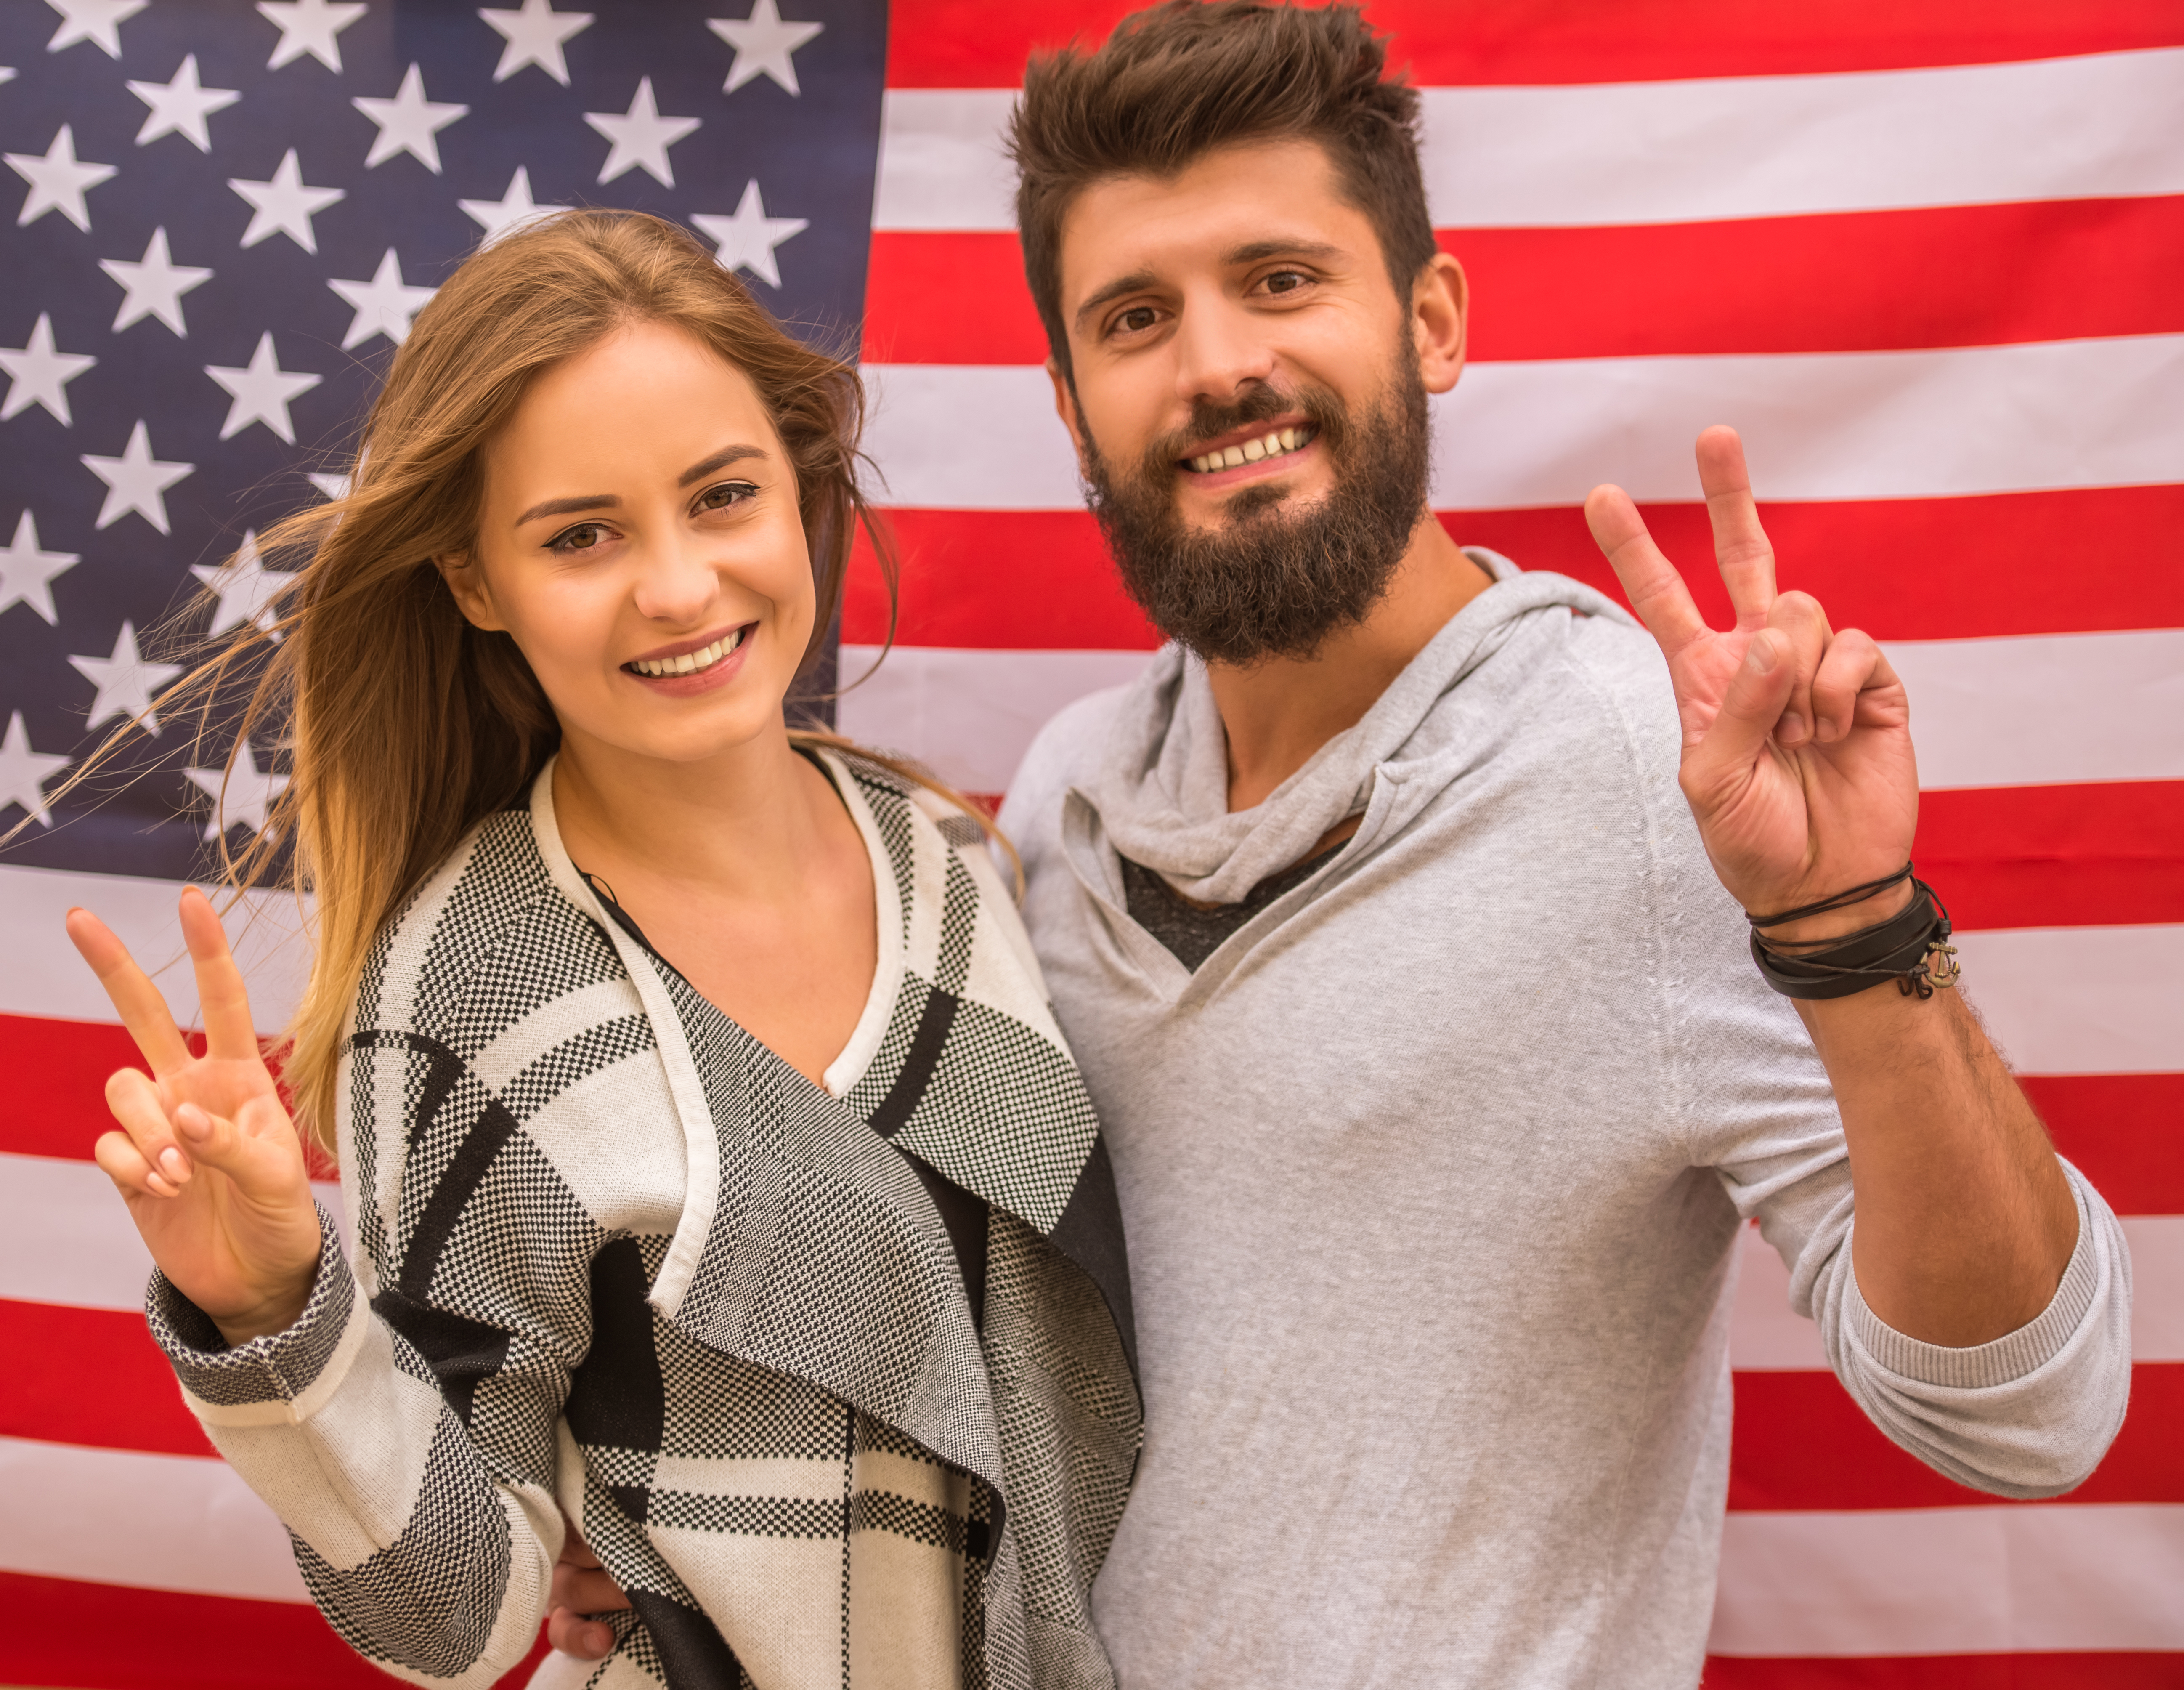 Portrait of a young happy couple on the background of the US flag